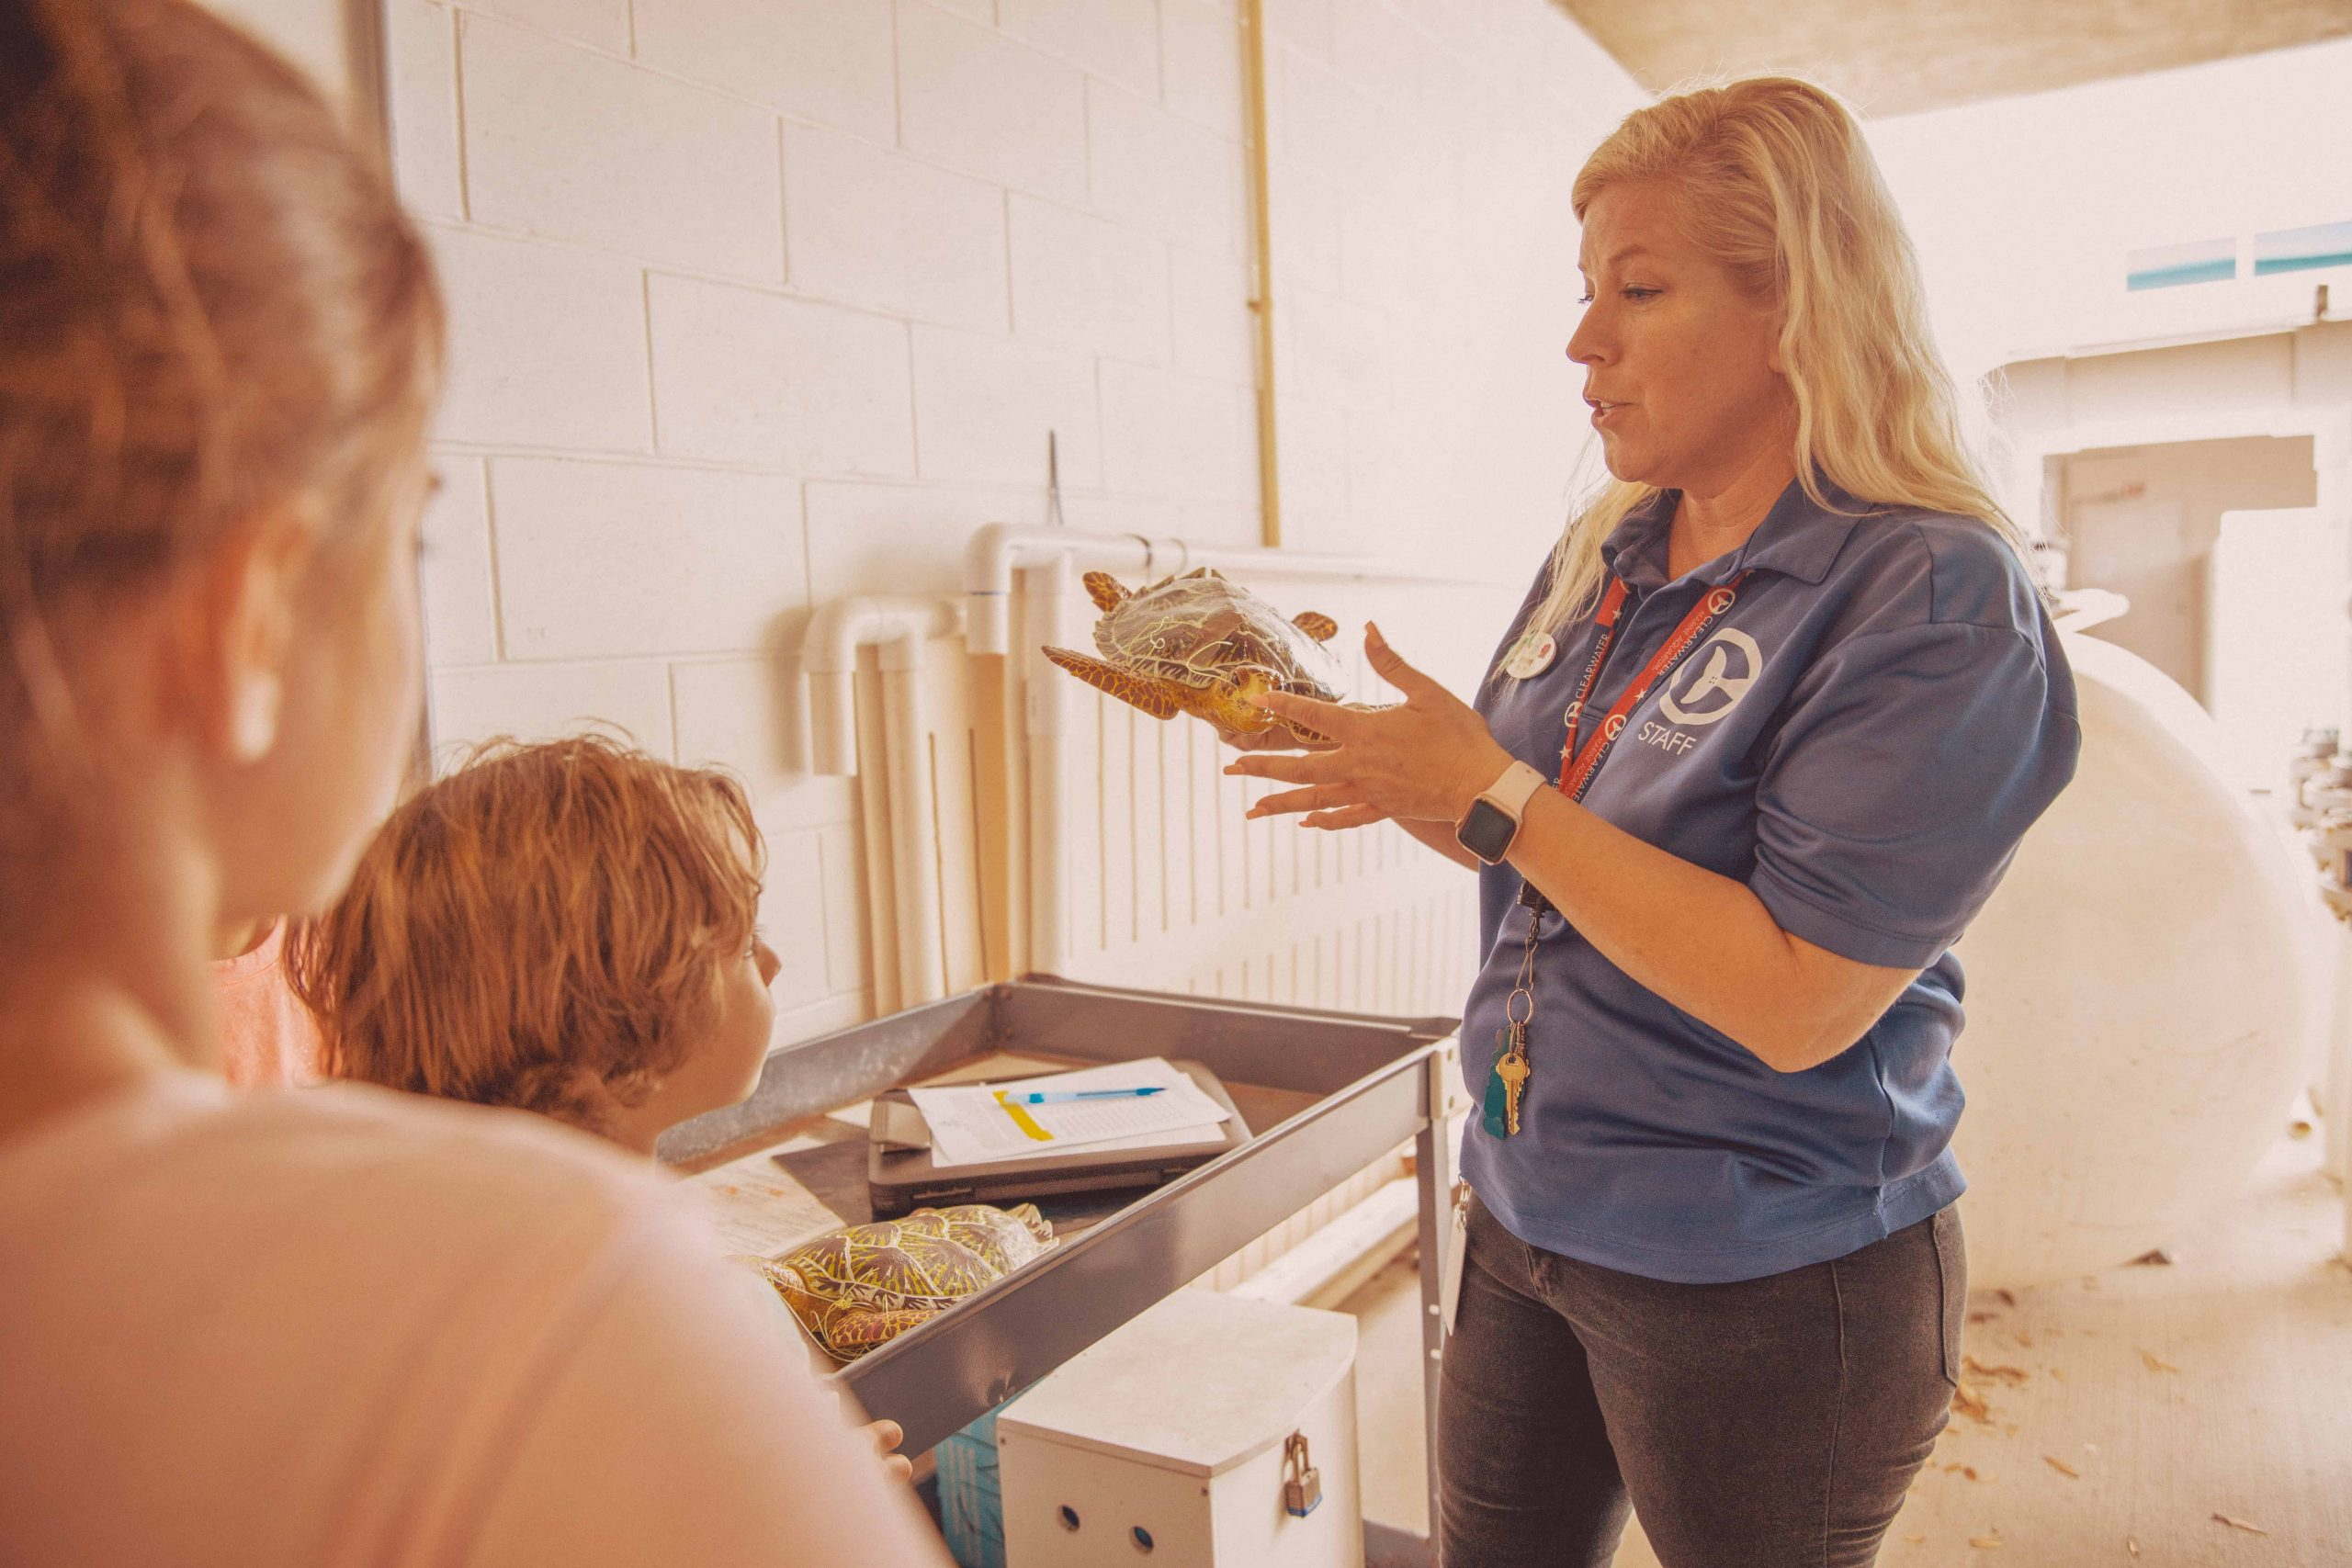 CMA Staff Teaching About Turtles in Behind the Scenes Tour